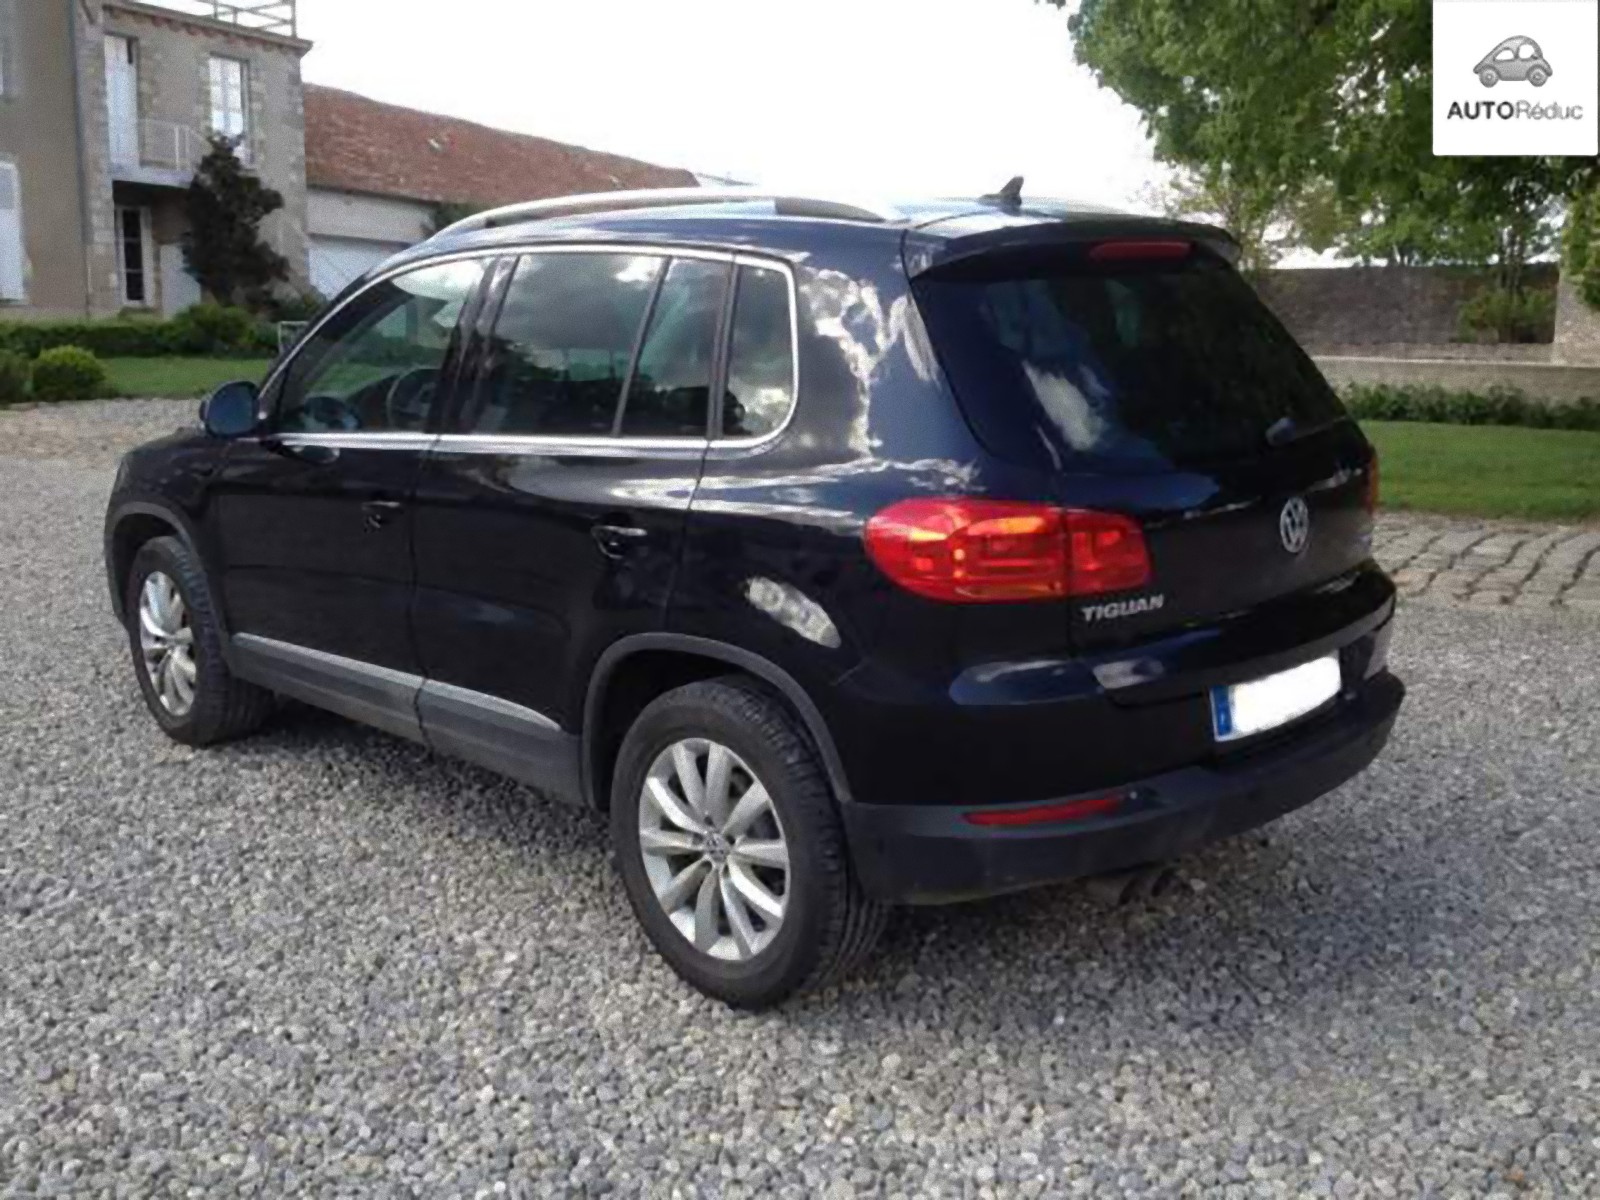 achat volkswagen tiguan sportline 2 0tdi 140ch d 39 occasion. Black Bedroom Furniture Sets. Home Design Ideas